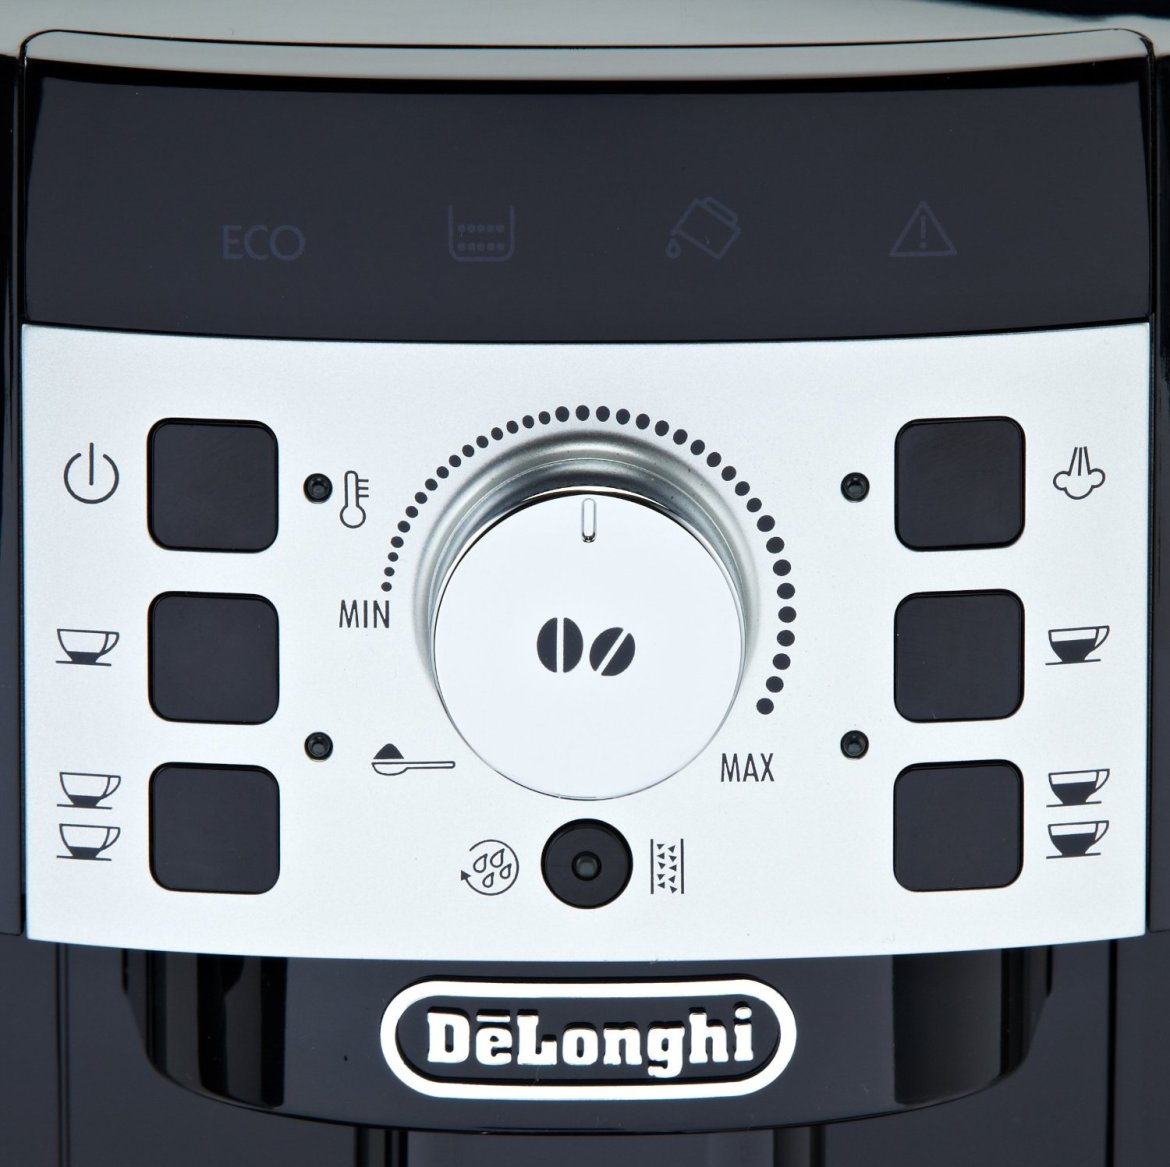 DeLonghi ECAM 22.110.B Display